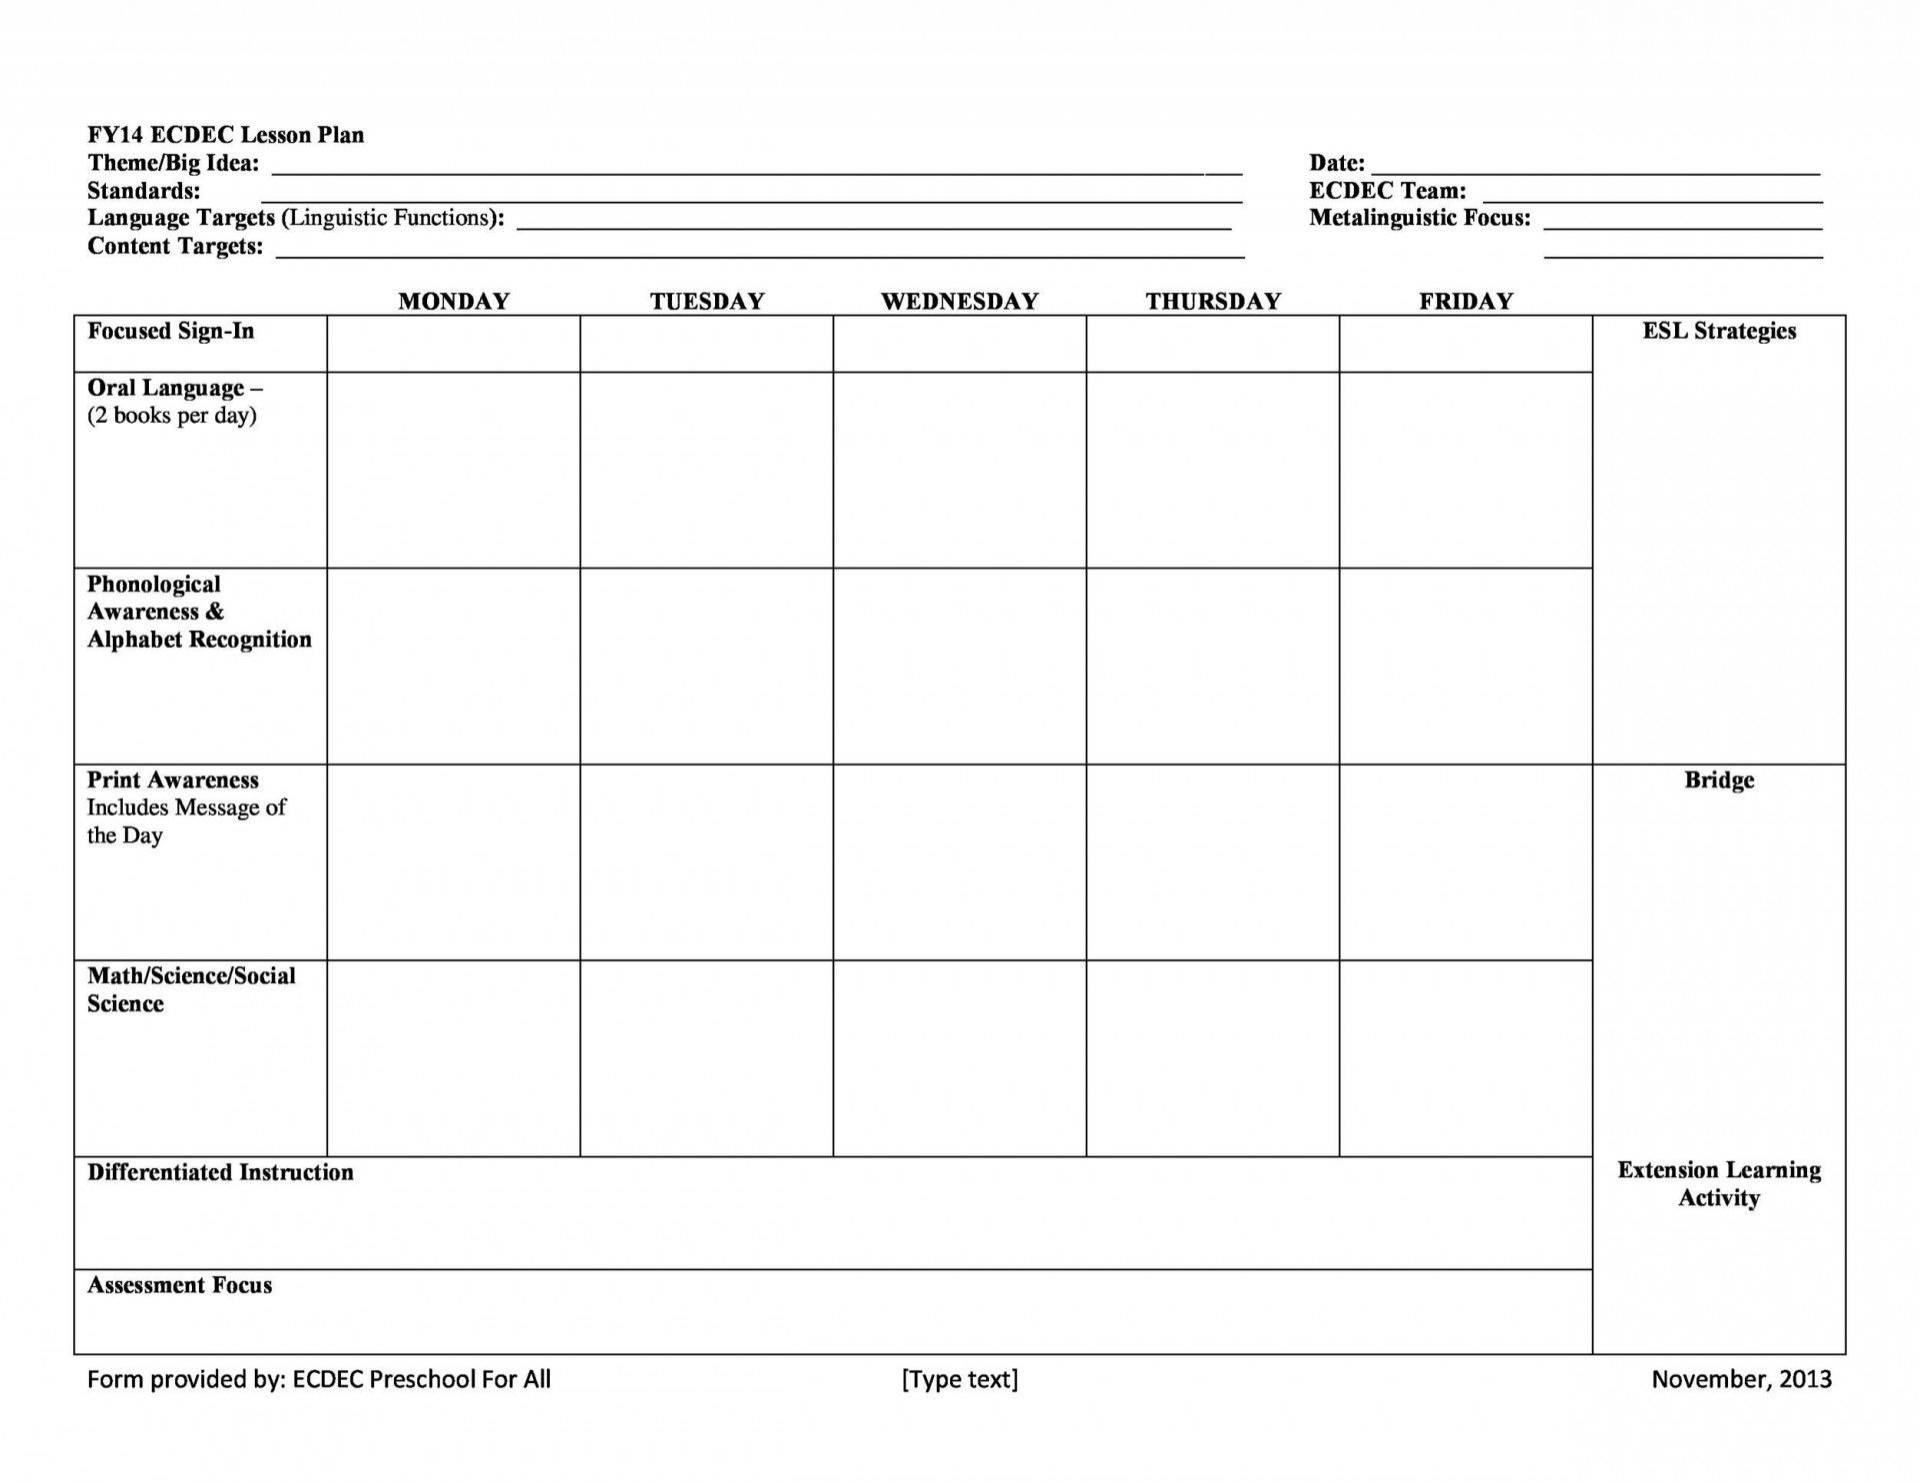 002 Shocking Free Printable Lesson Plan Template Blank Highest Quality  Format1920